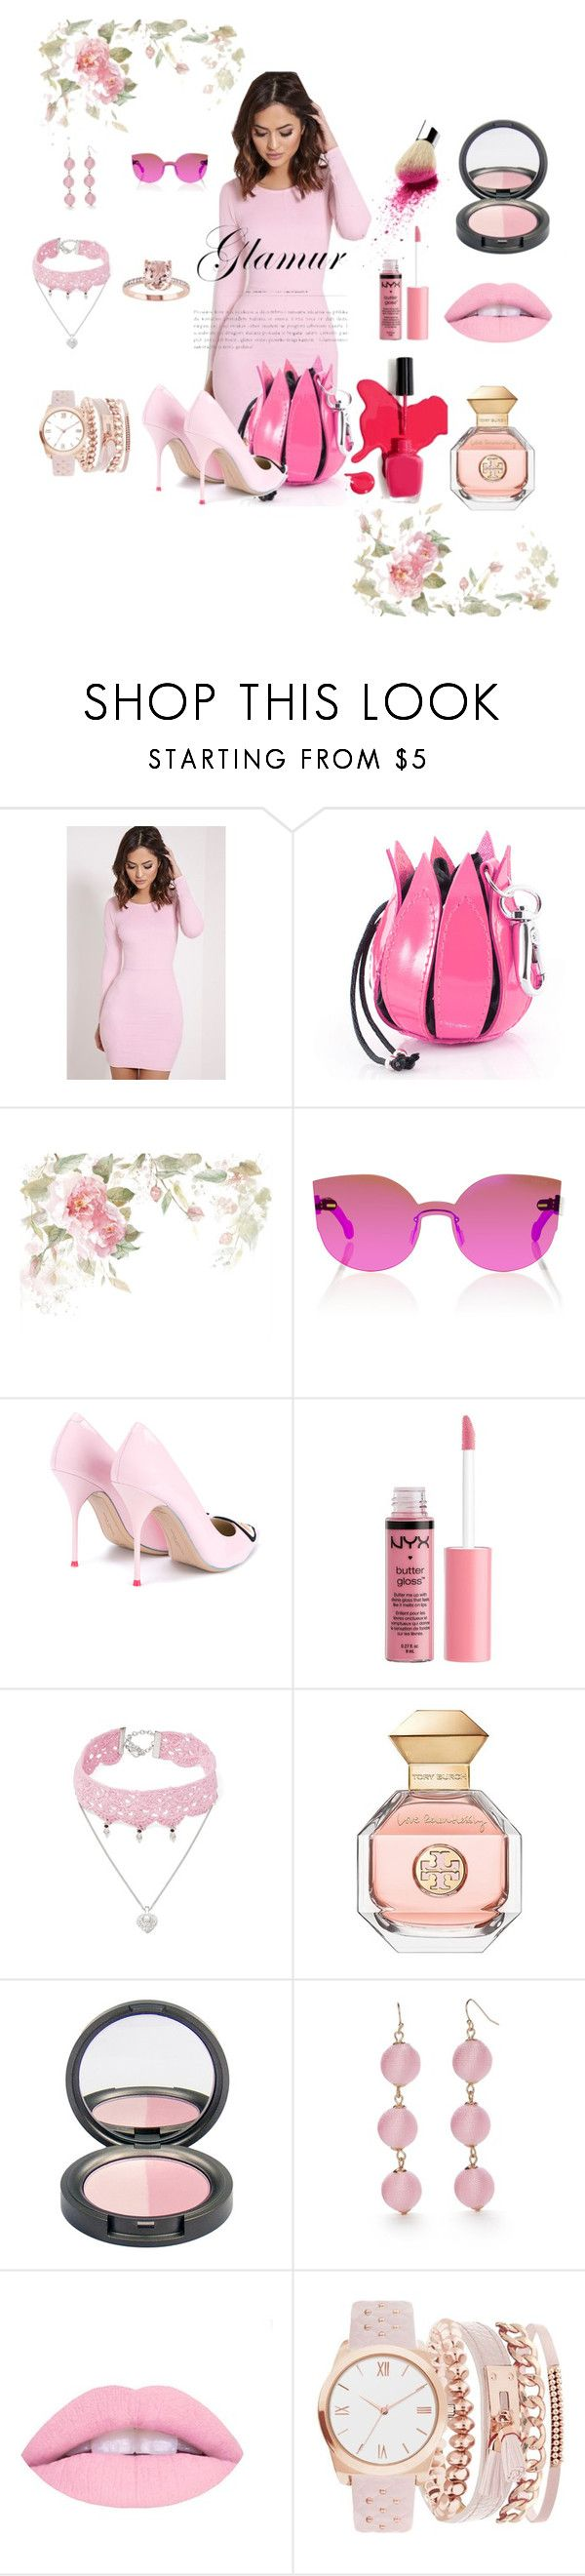 """""""50 shades of pink"""" by faraastyle ❤ liked on Polyvore featuring RetroSuperFuture, Sophia Webster, Charlotte Russe, Design Lab, Tory Burch, New Directions, A.X.N.Y. and monochromepink"""